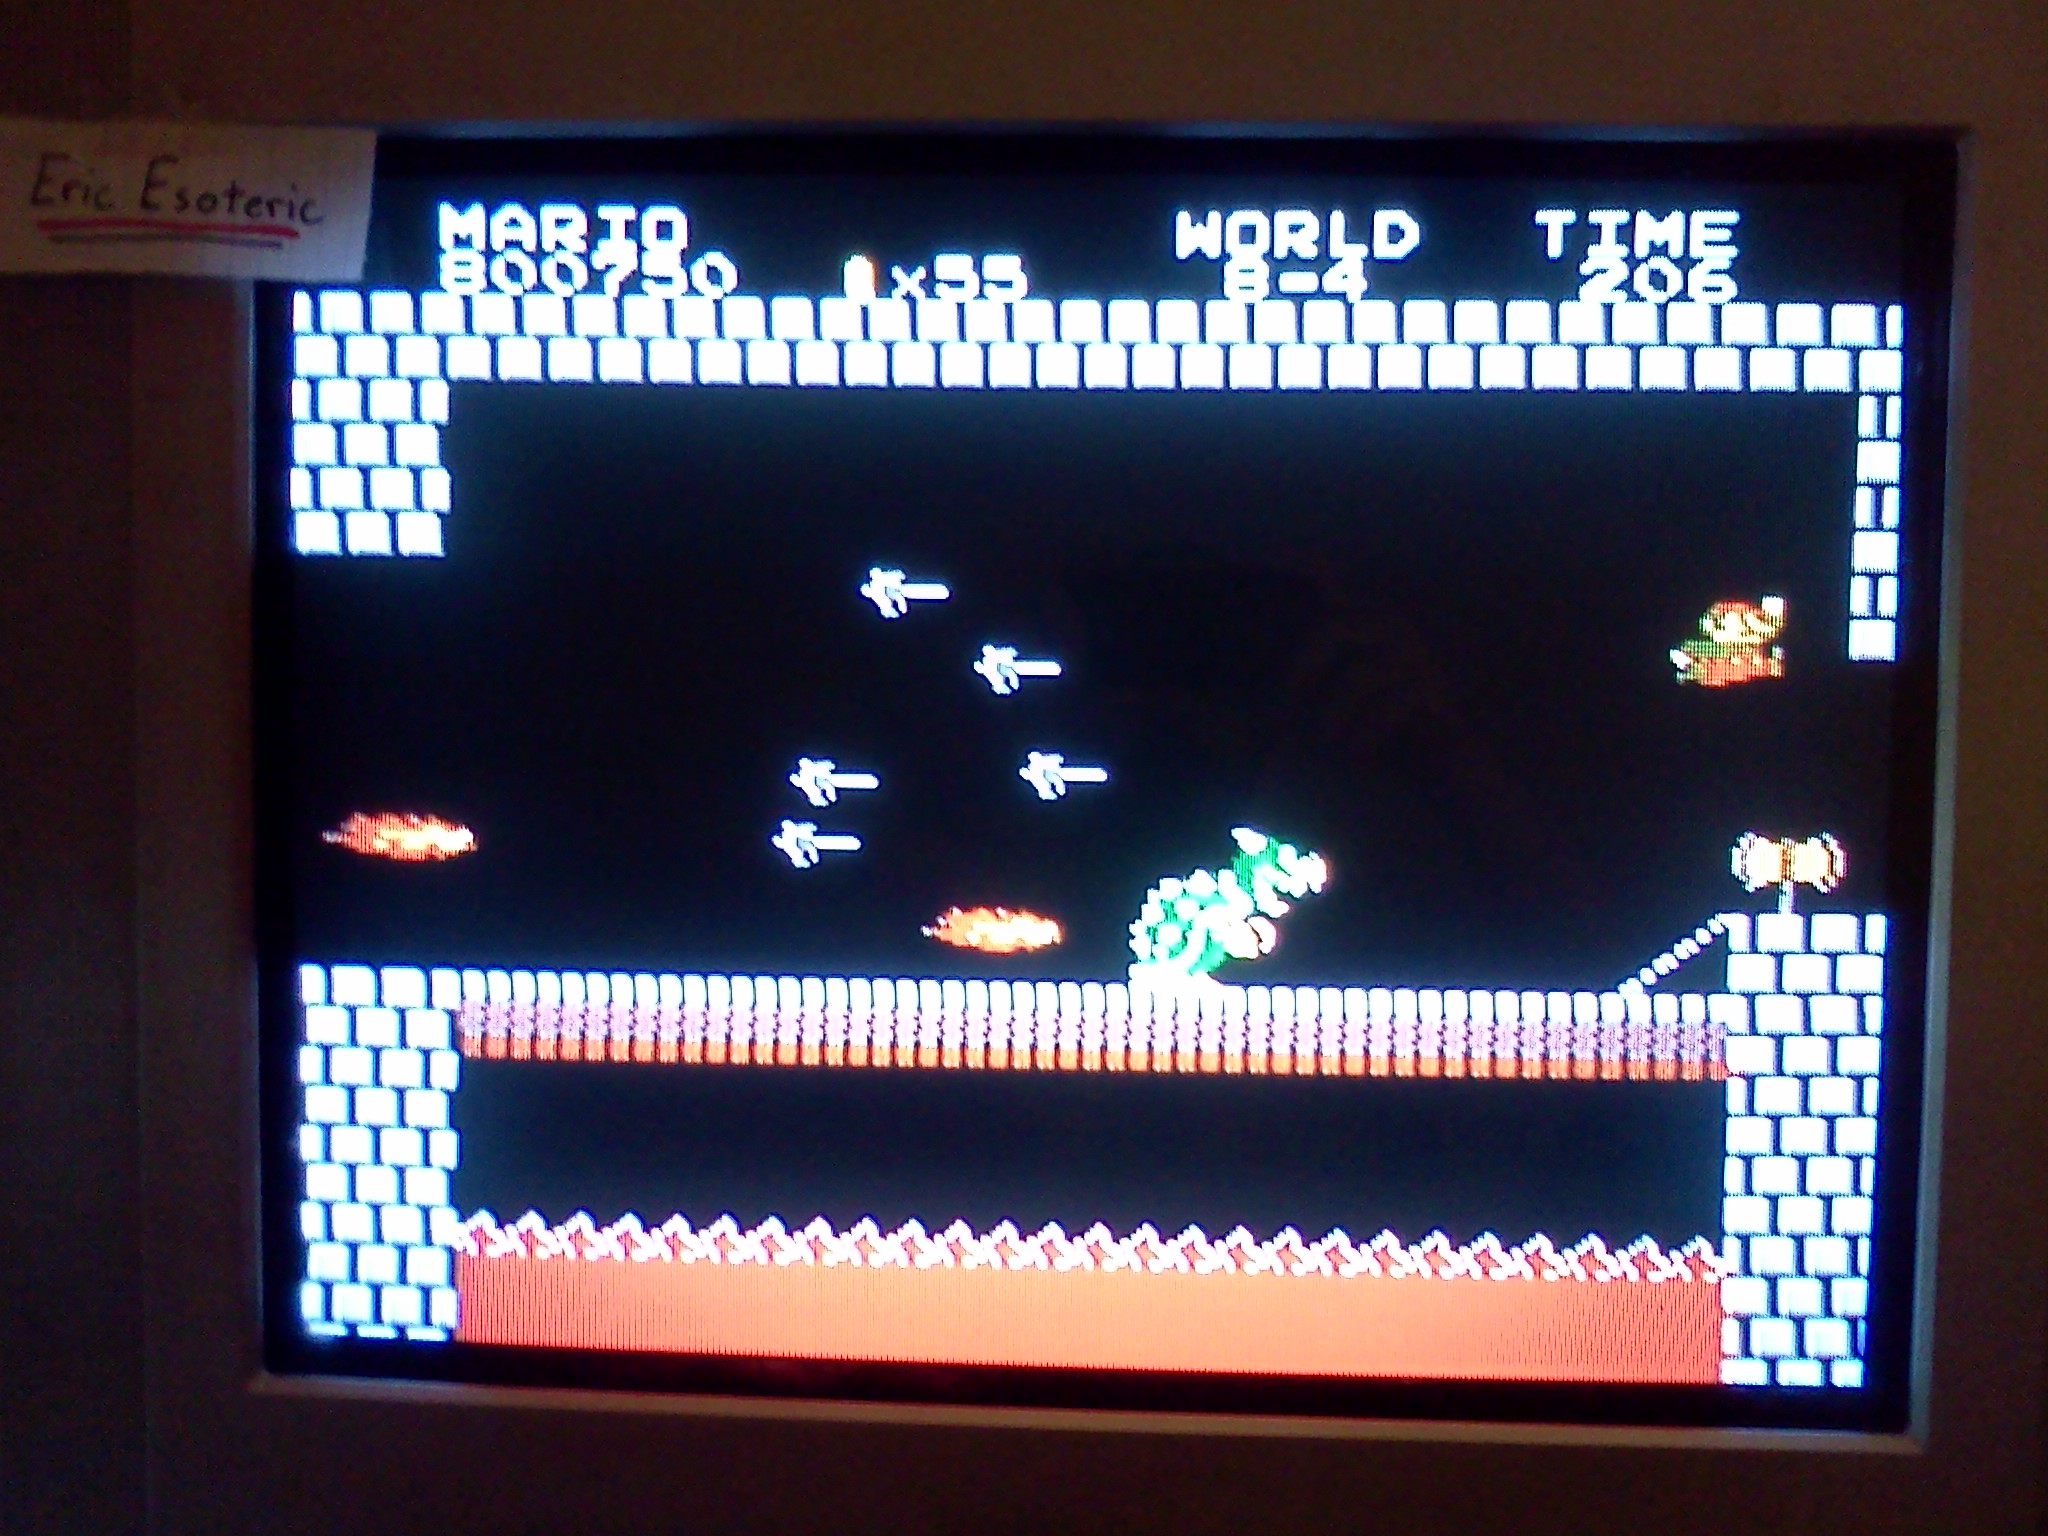 Super Mario Bros. 800,750 points